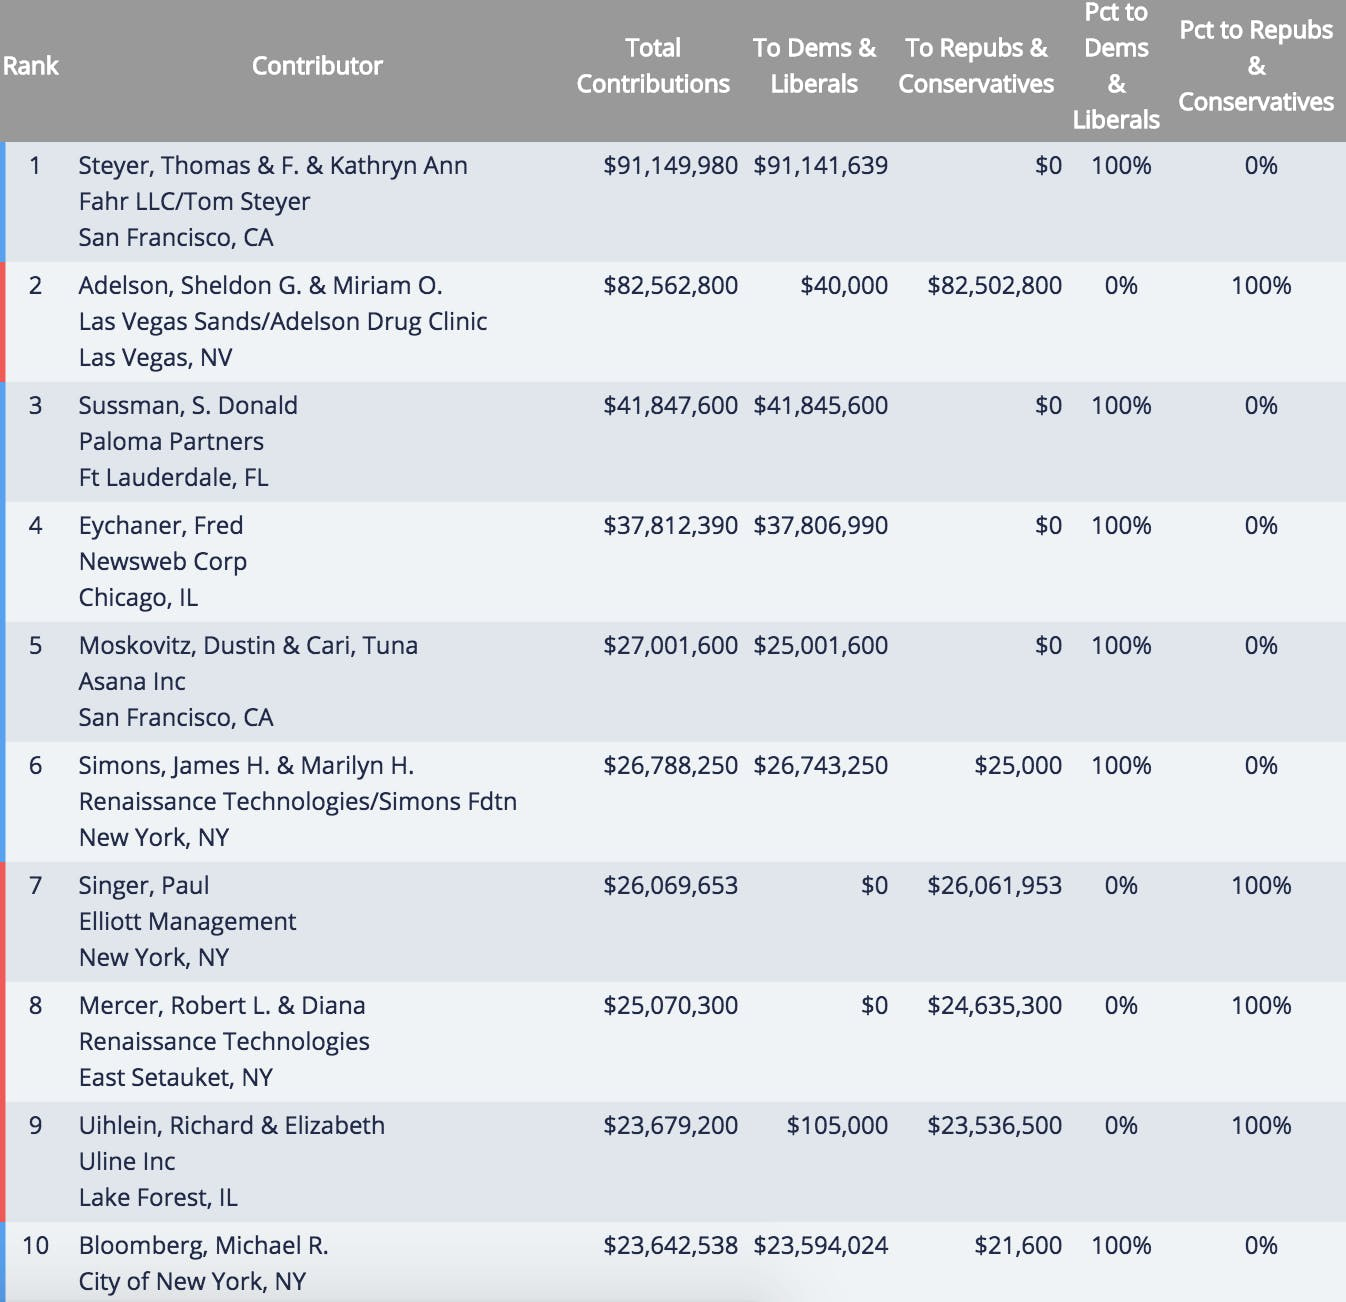 Top 10 political donors during the 2016 election cycle, via OpenSecrets